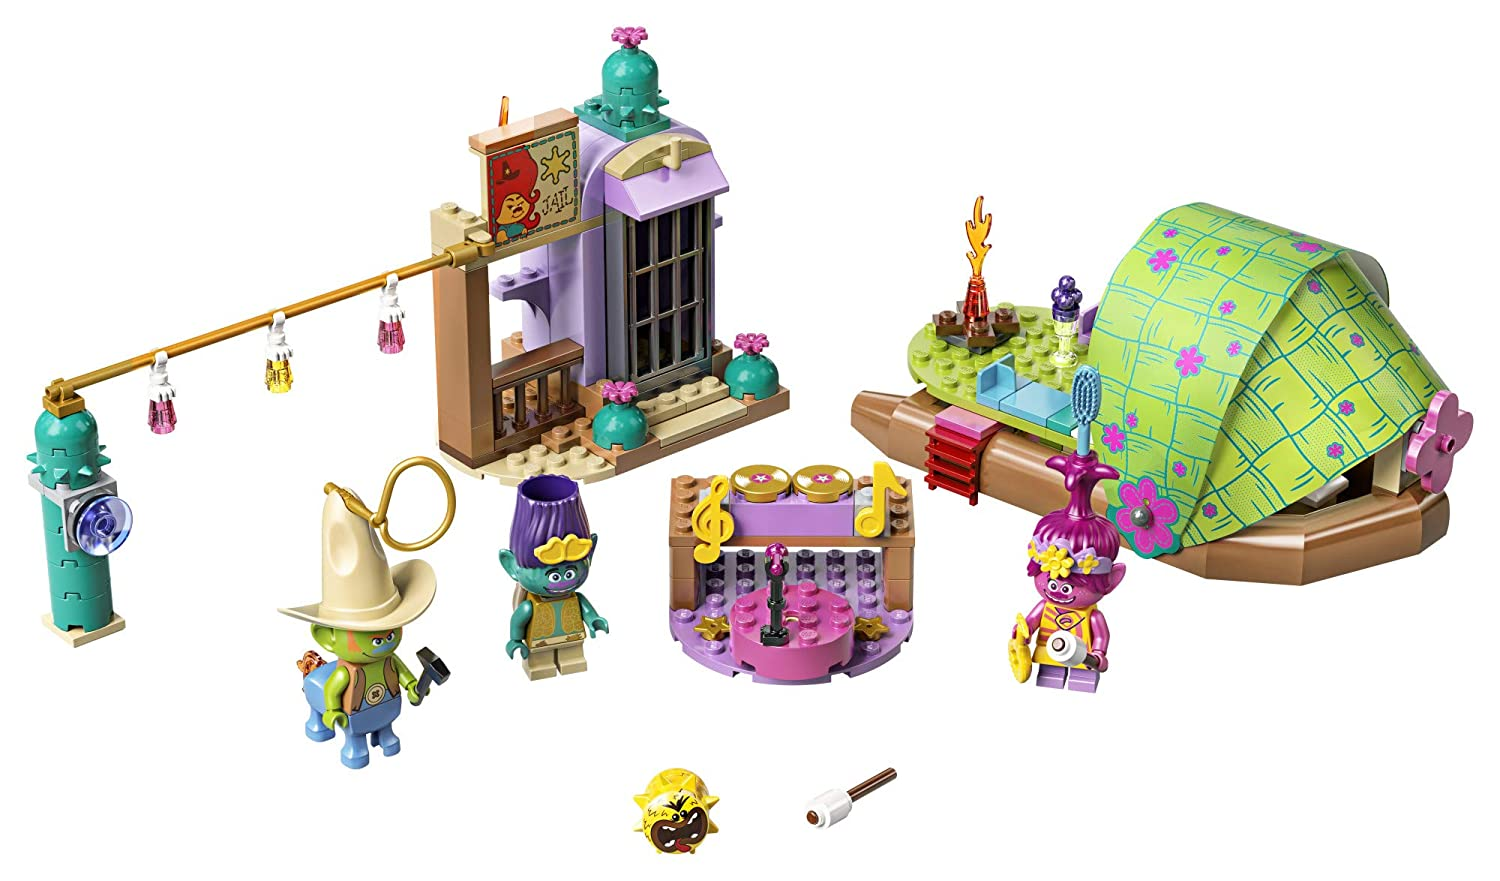 Great Trolls Gift for Creative Kids New 2020 LEGO Trolls World Tour Lonesome Flats Raft Adventure 41253 Kids Building Kit 159 Pieces